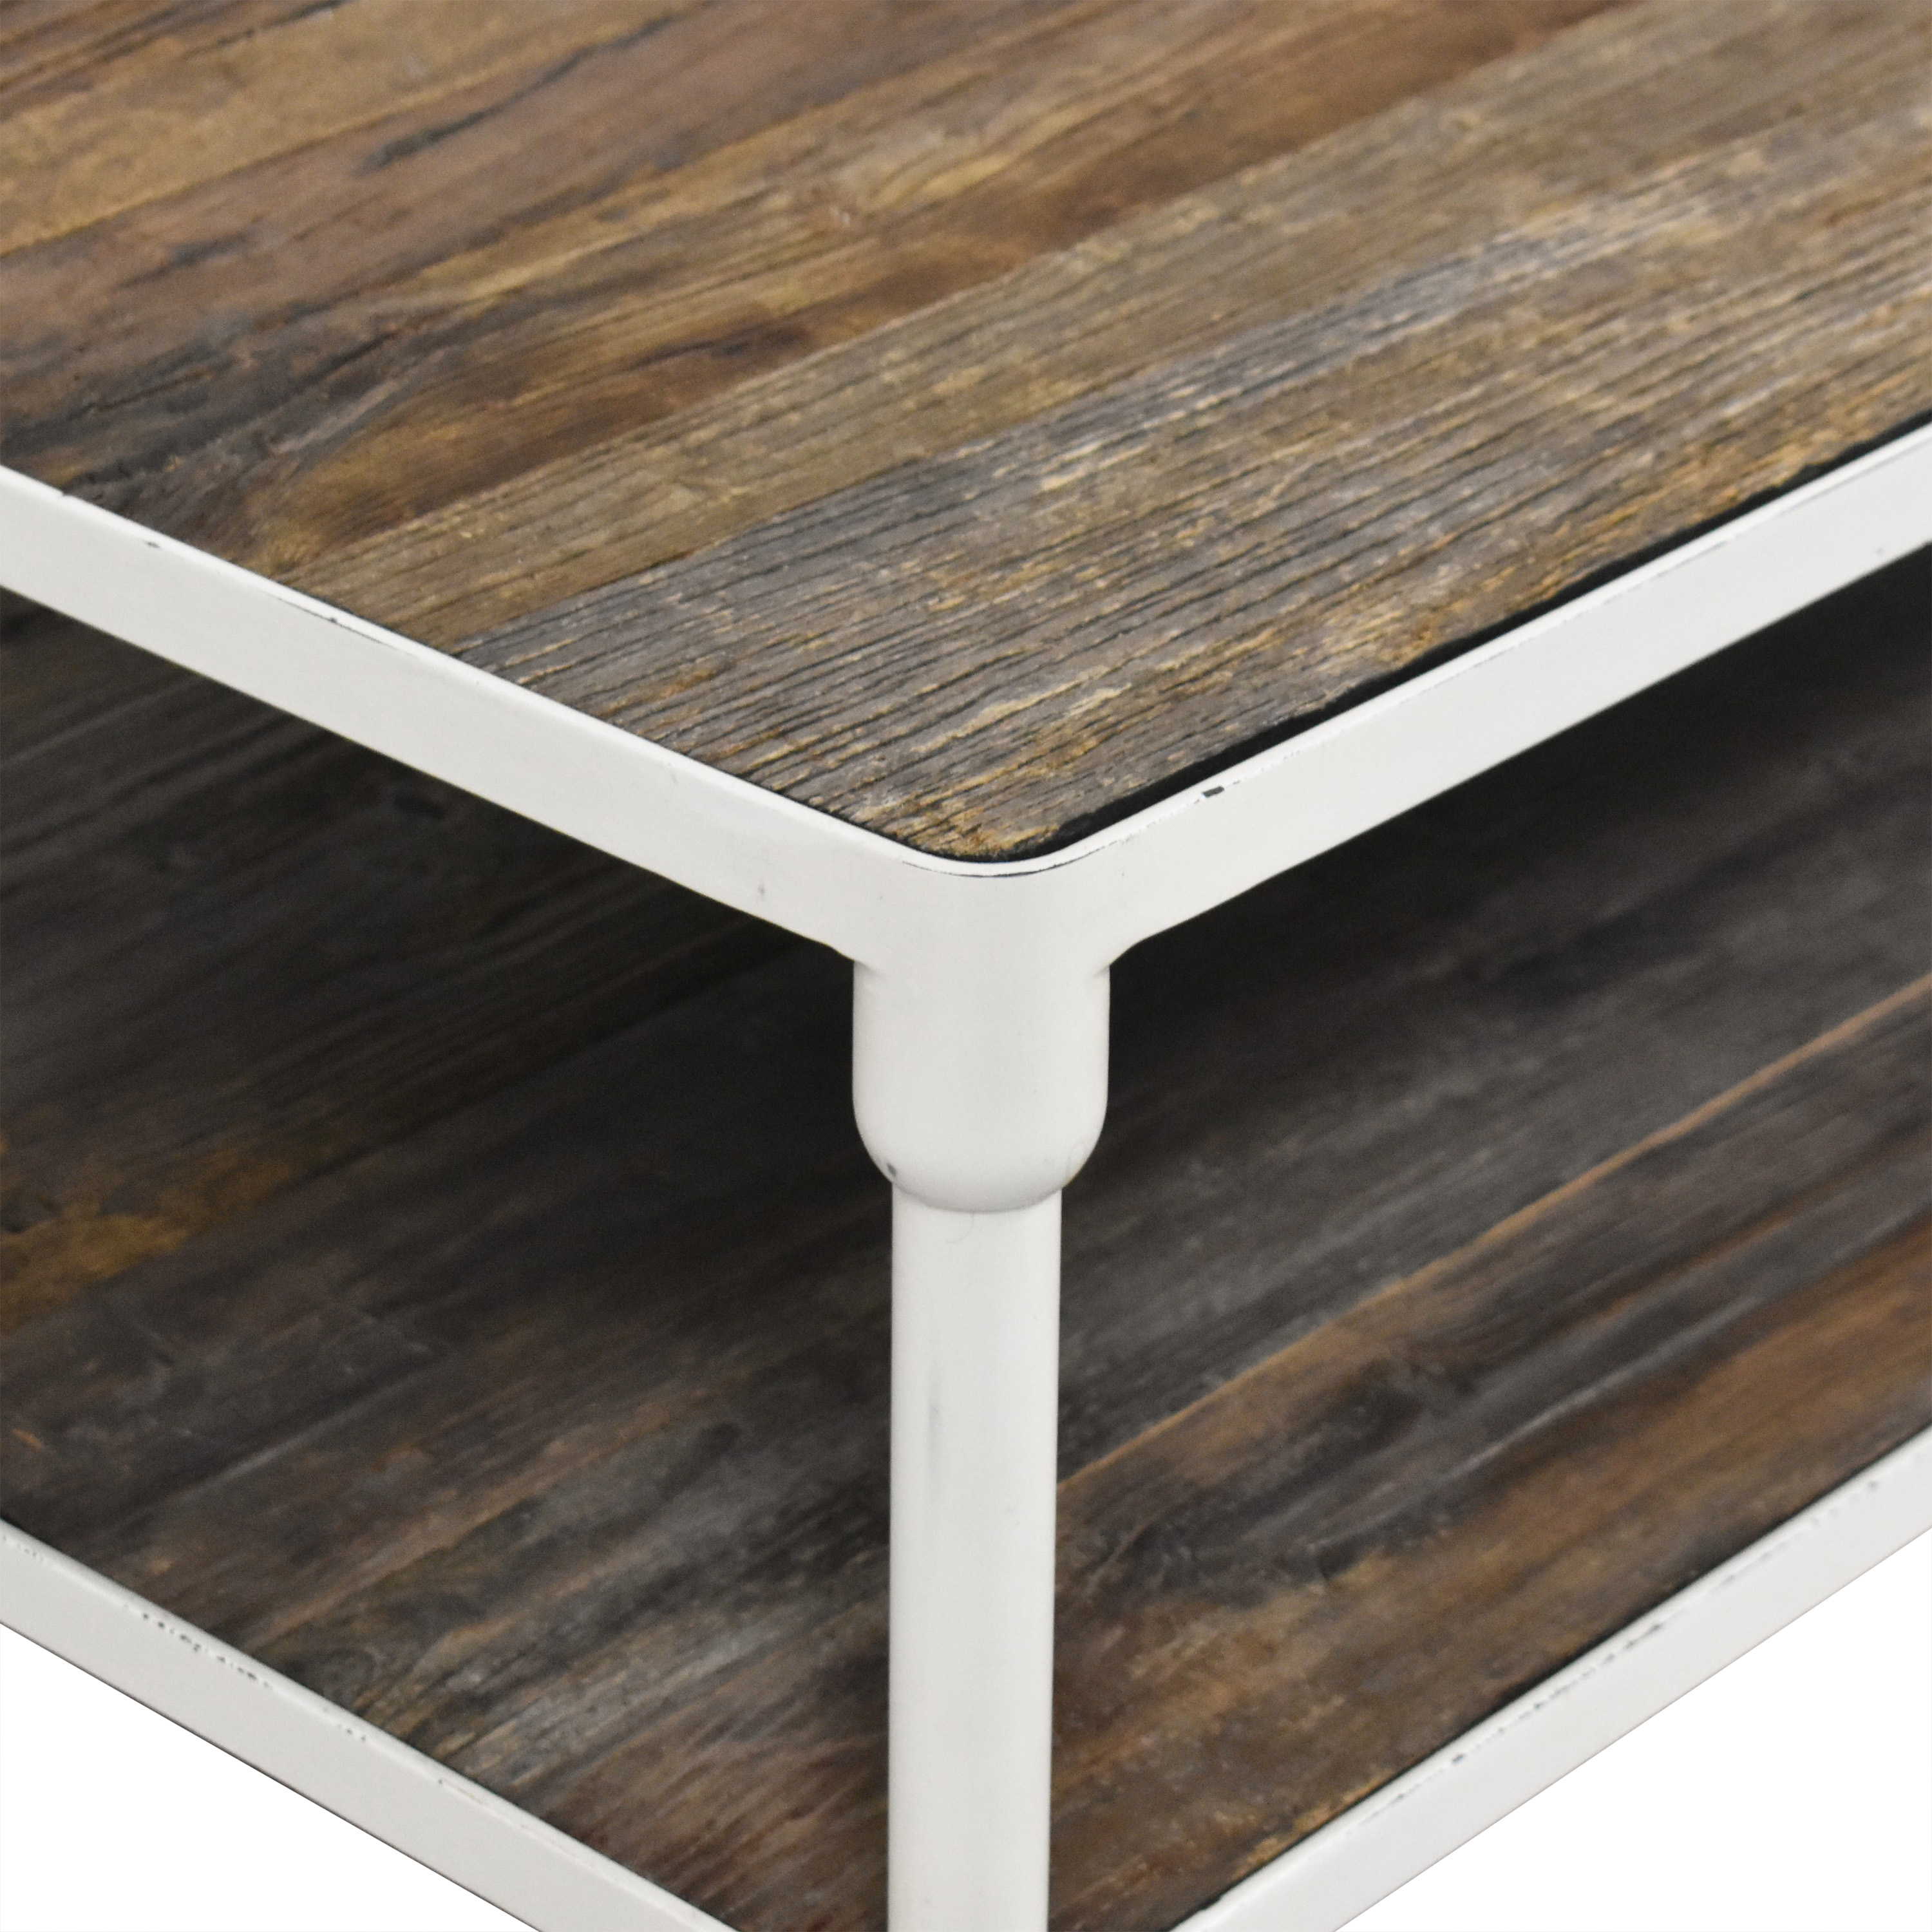 Restoration Hardware Restoration Hardware Dutch Industrial Coffee Table for sale